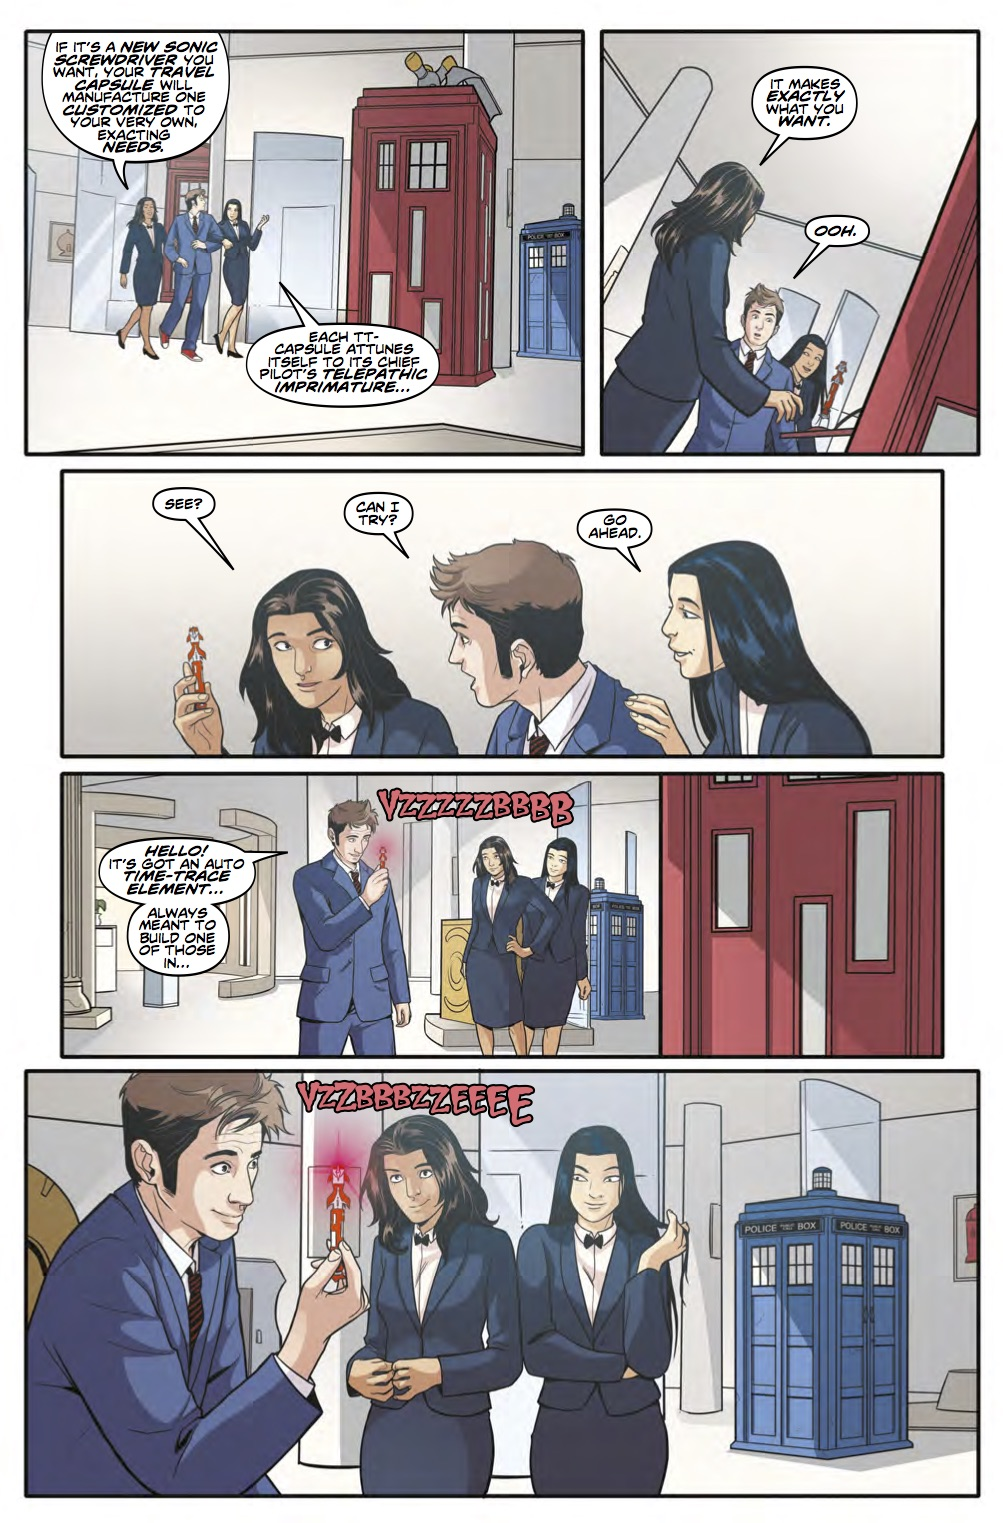 THE_TENTH_DOCTOR_3_2_Preview 4 (Credit: Titan)